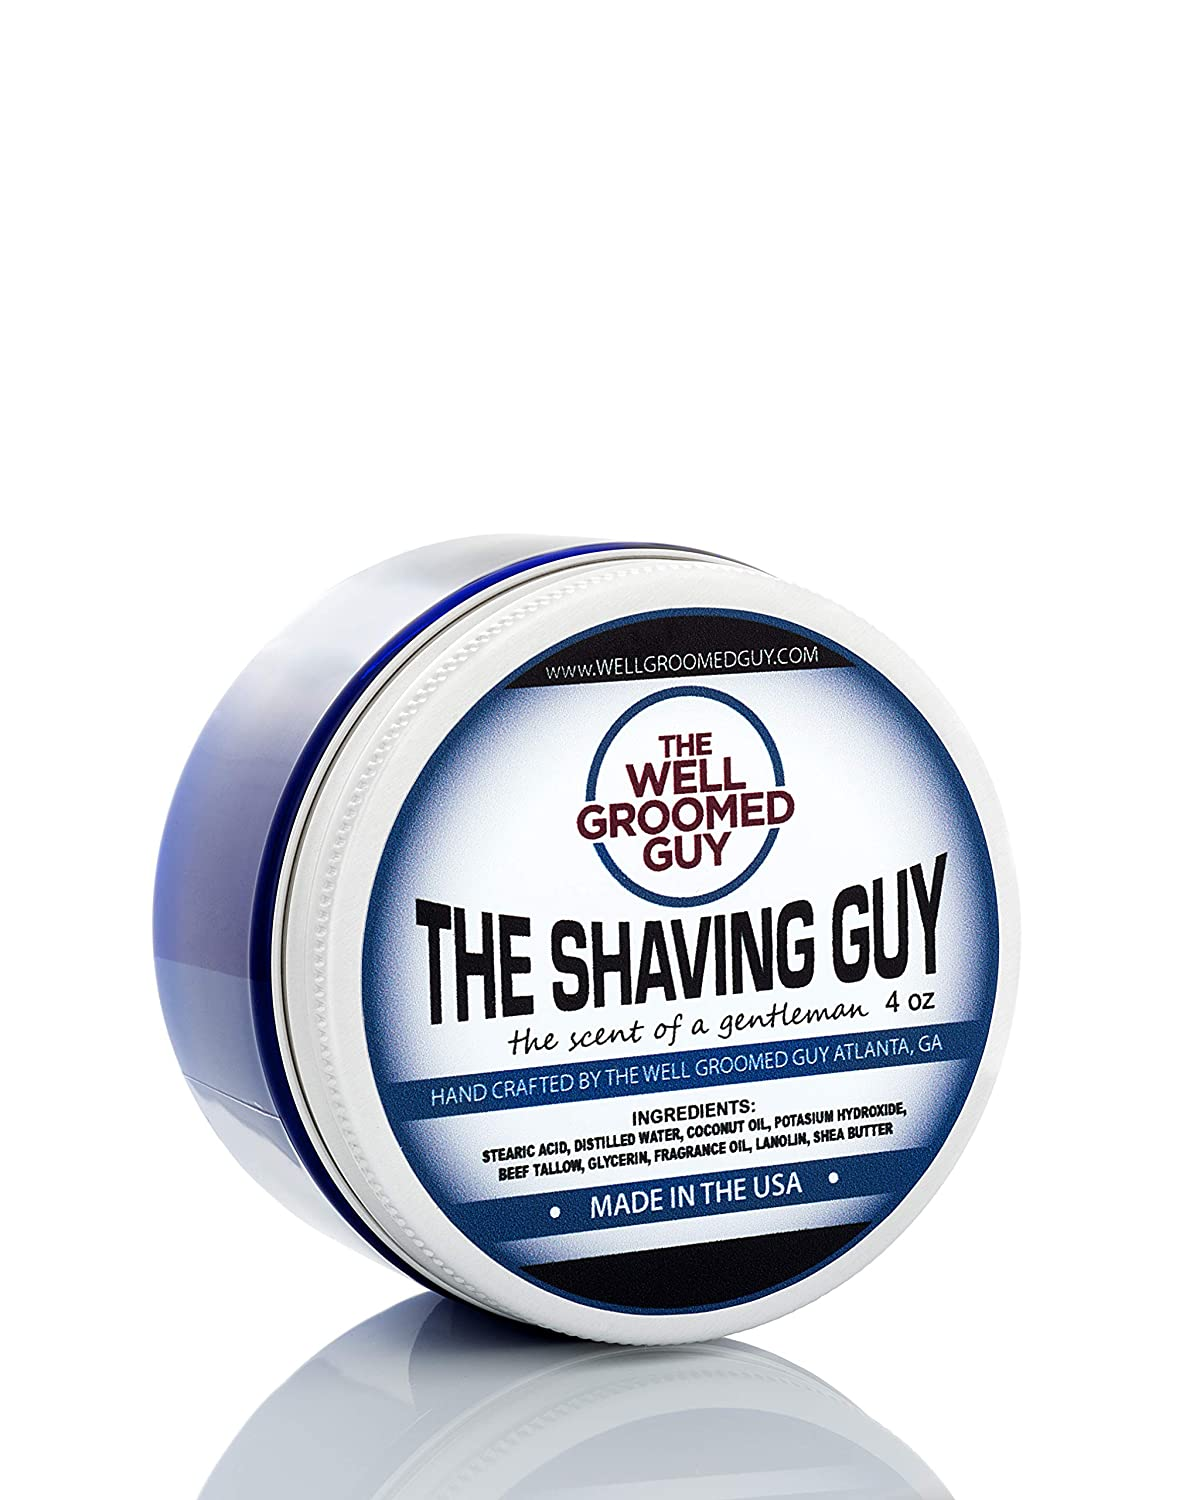 The Well Groomed Guy Shaving Soap - High-end Shaving Soap for Men - Natural, Lather Shaving Soap - For a Close & Smooth Shave with Tallow Glycerin & Lanolin – Premium Skin Care Lavender & Sandalwood S